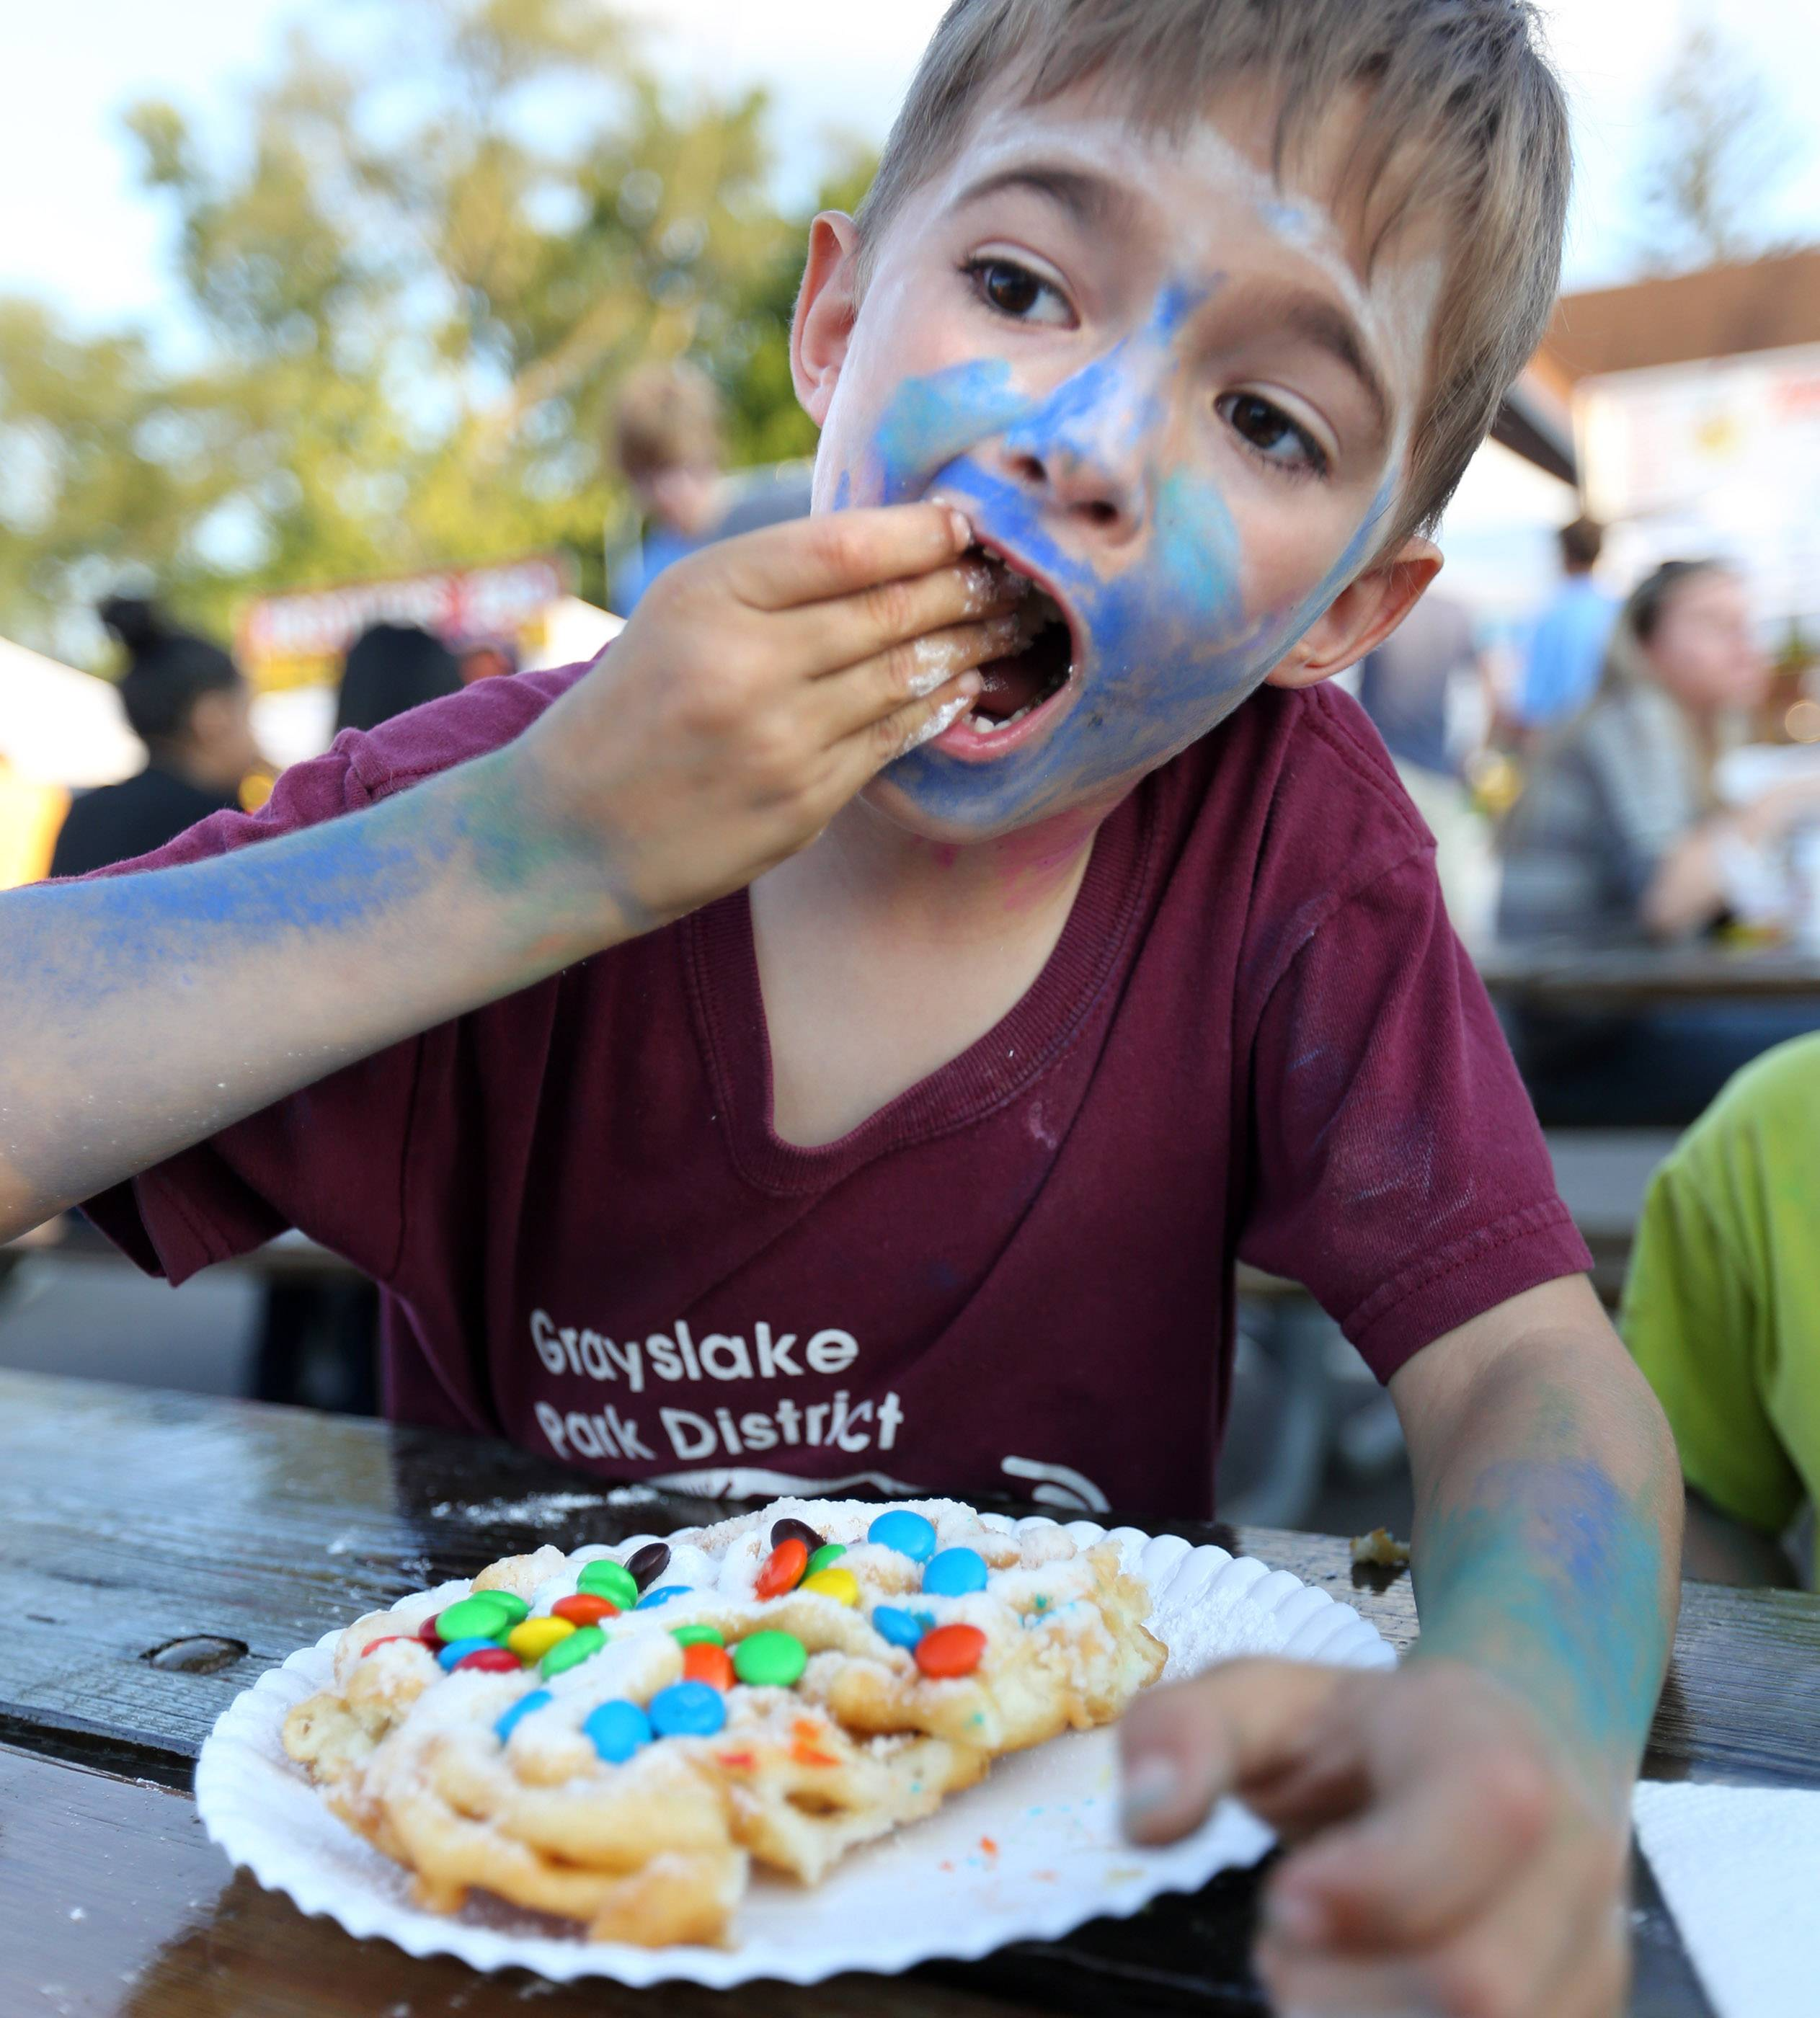 Joey Pavlik, 7, of Grayslake deemed the M&M-covered funnel cake to be the best food item at Grayslake Summer Days. The festival opened Friday.